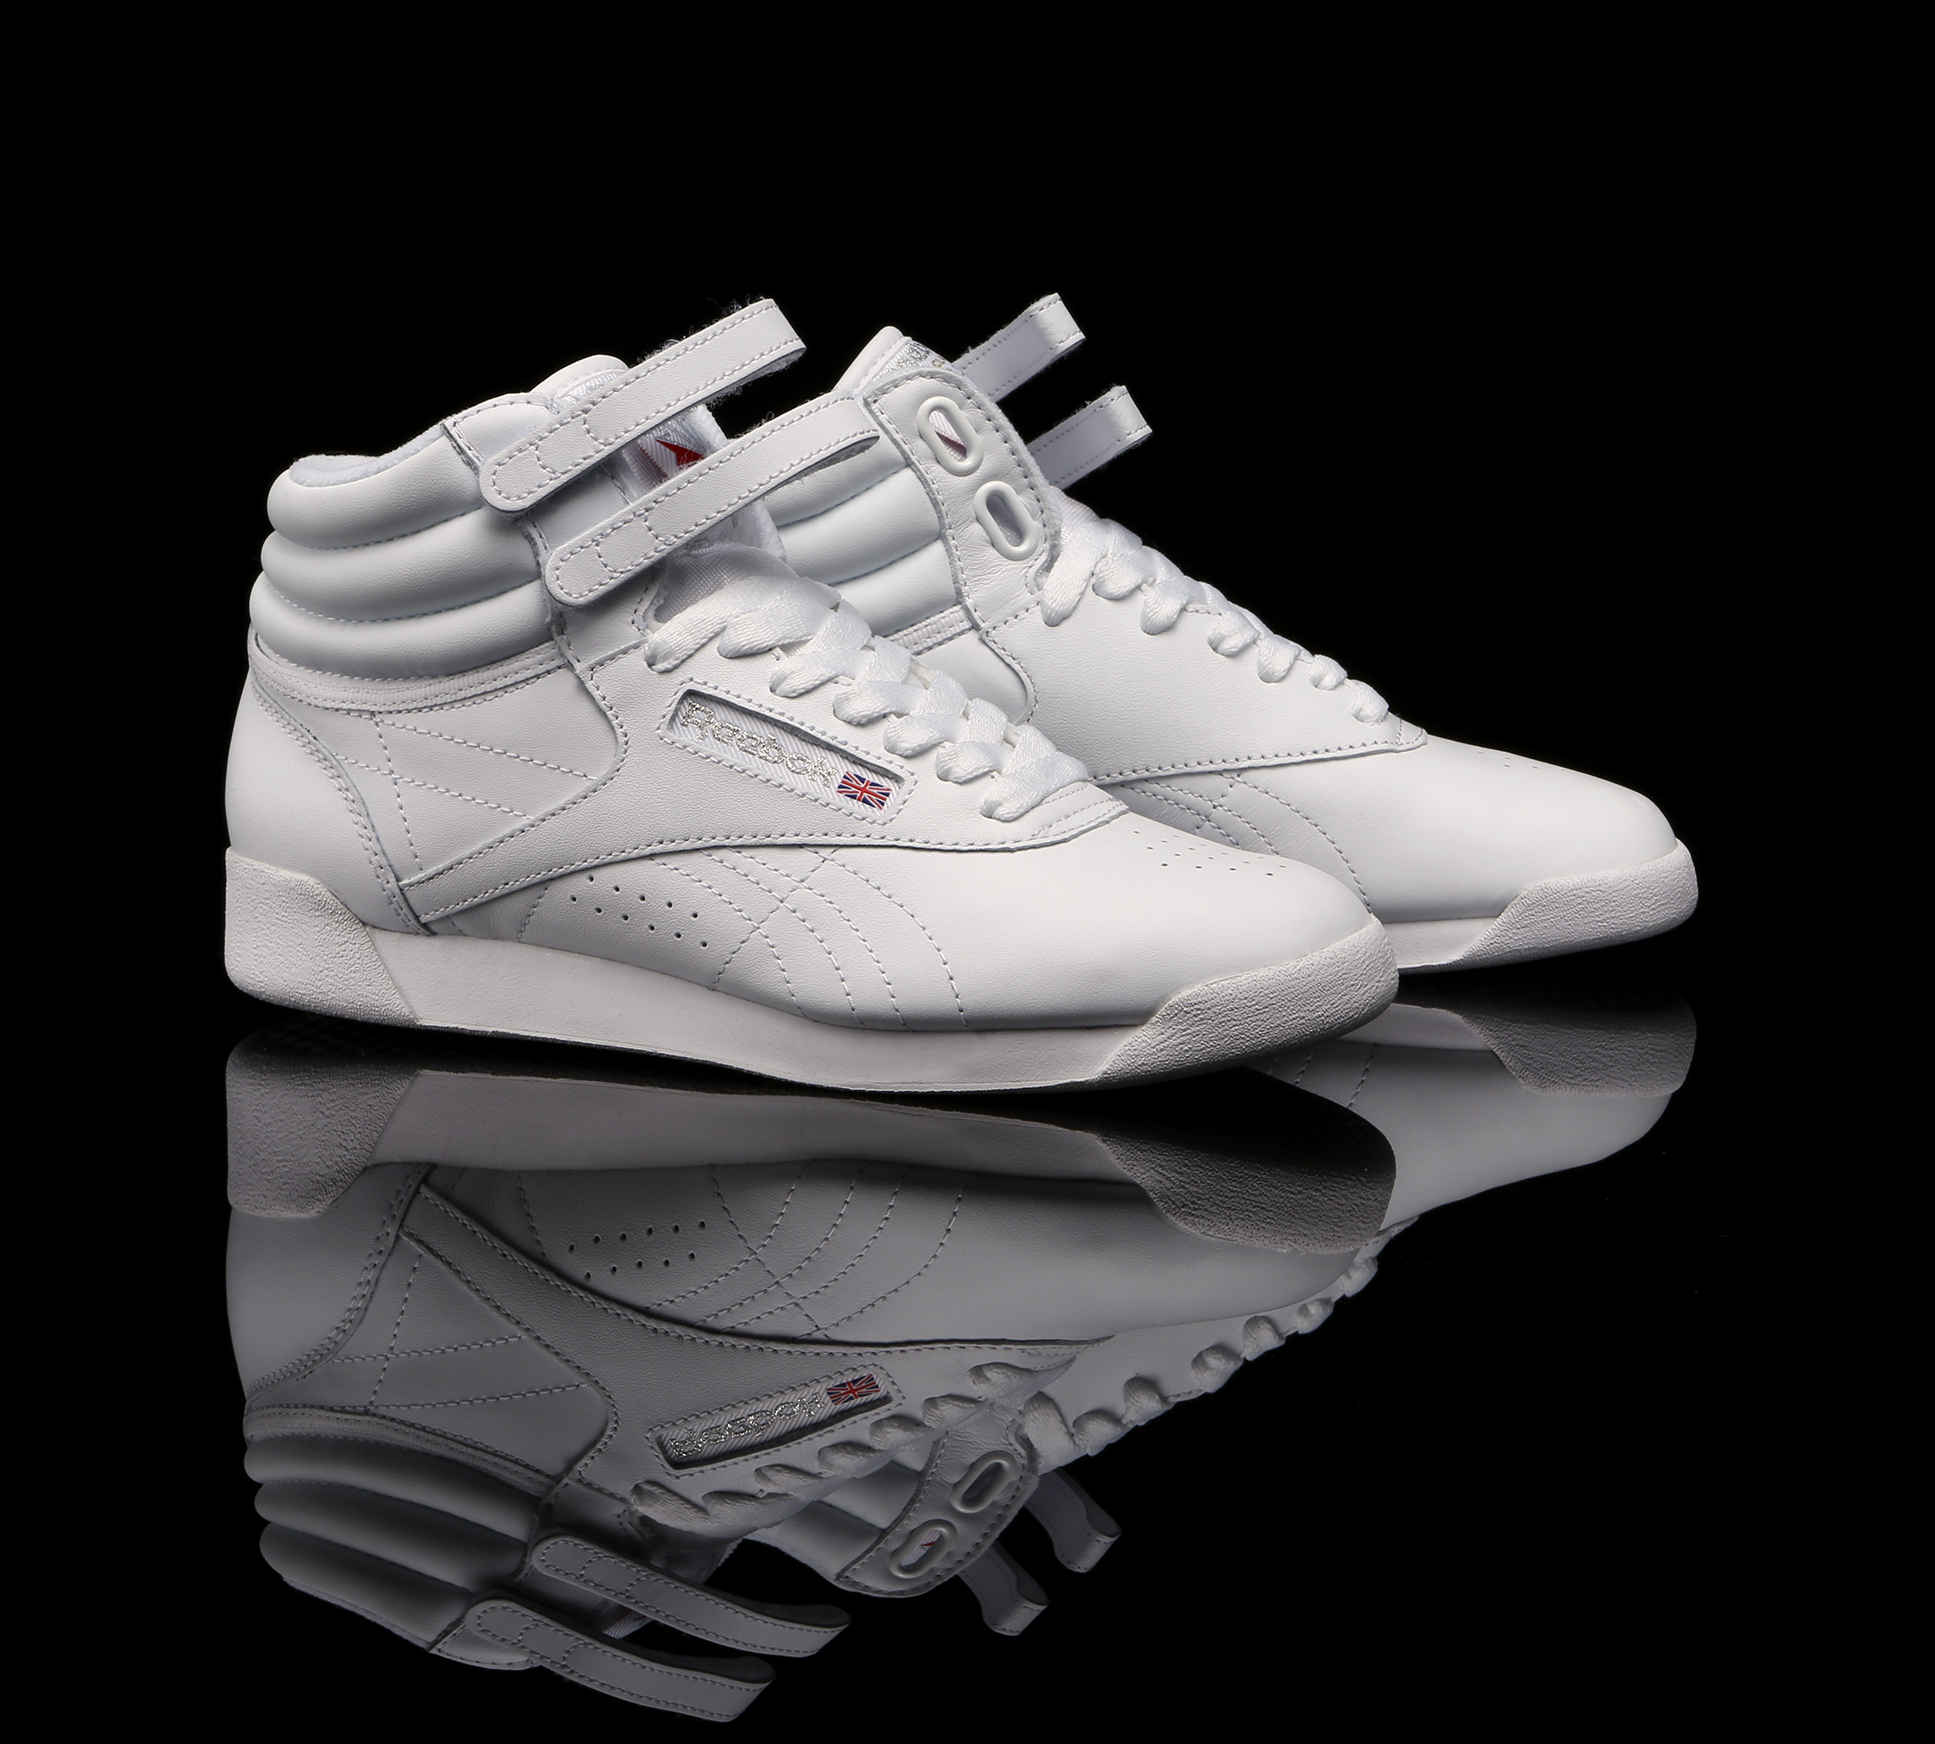 f664f097c50 Reebok Freestyle - Wikipedia